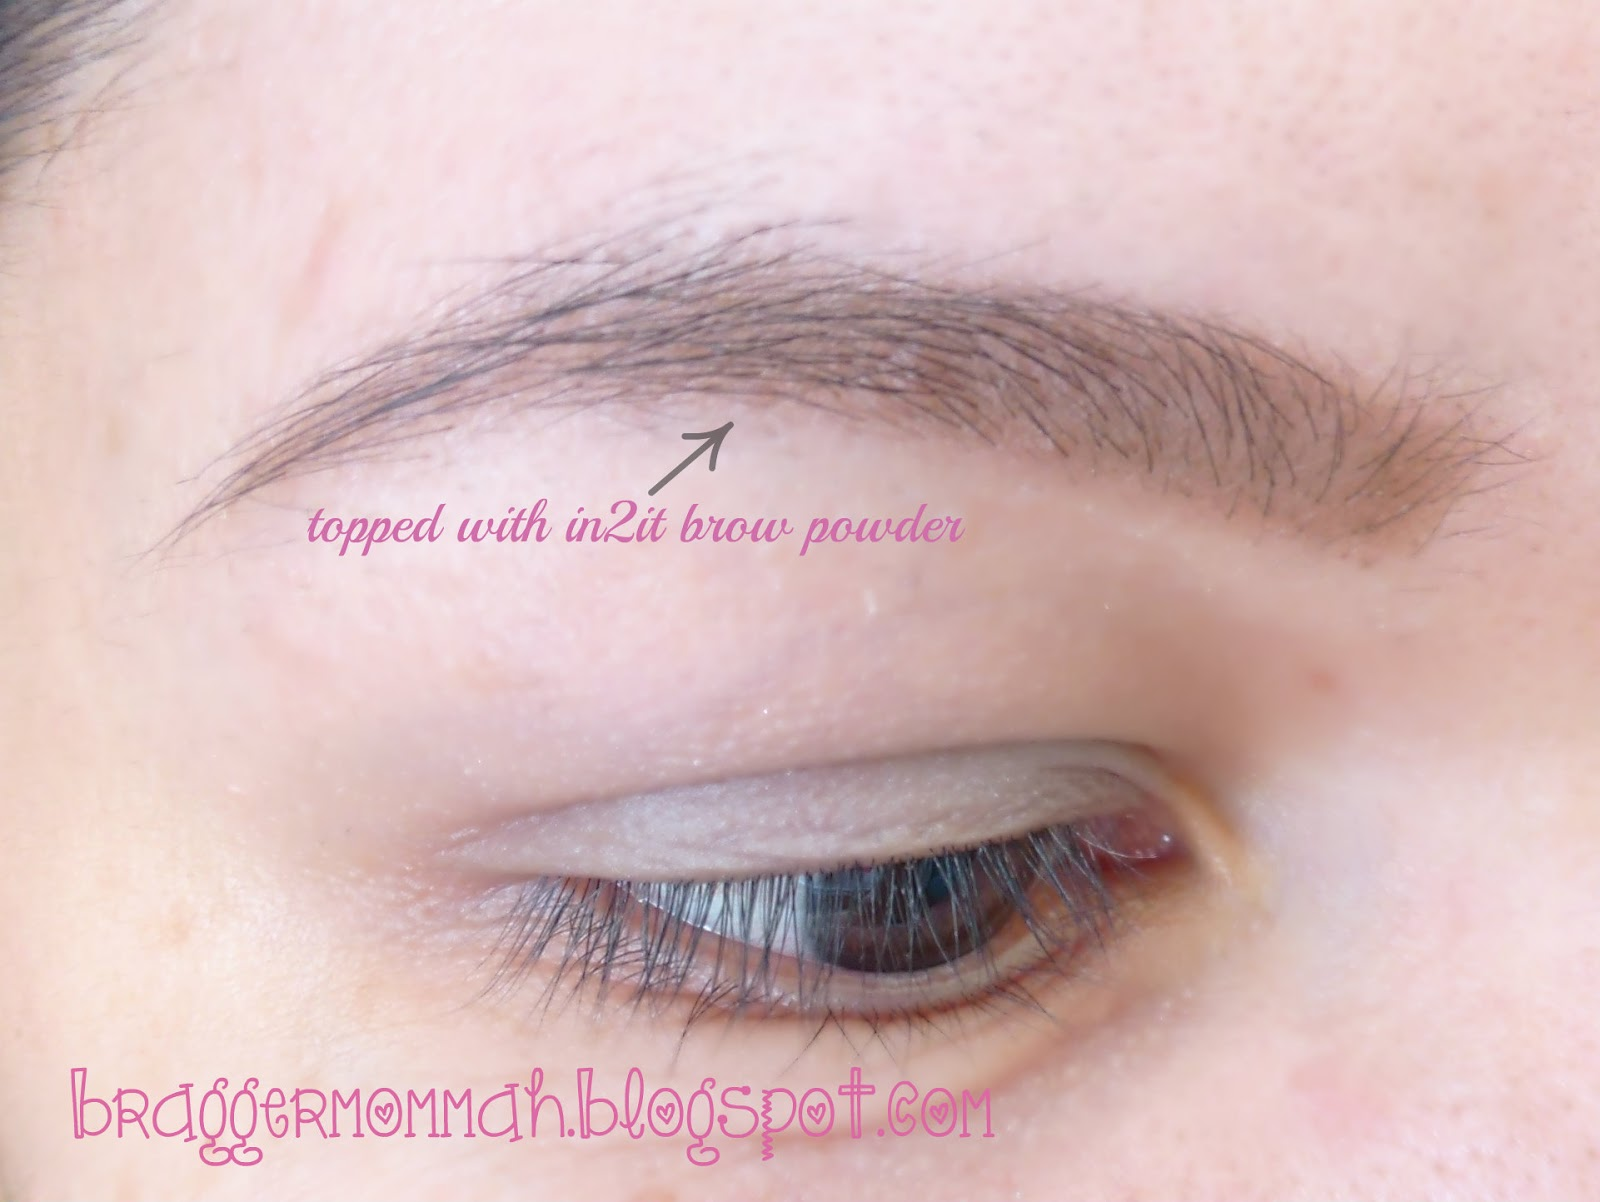 Braggermommah a naturally colored lids maybelline color for Natural eyebrow tattoo